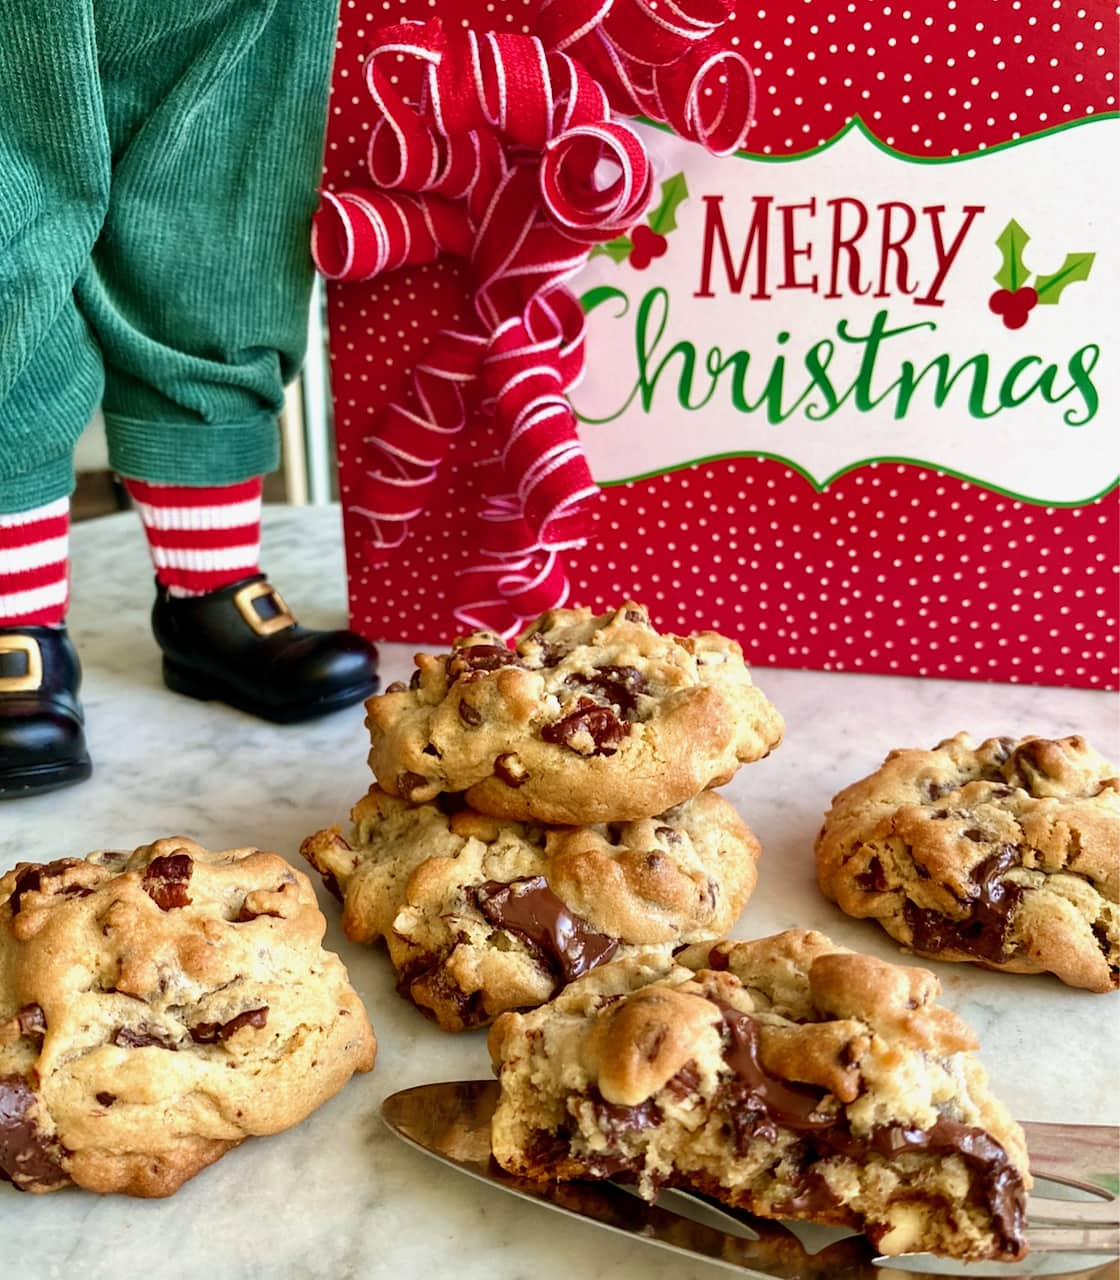 chocolate chip cookies sitting on a white table with a present and Santa standing over them